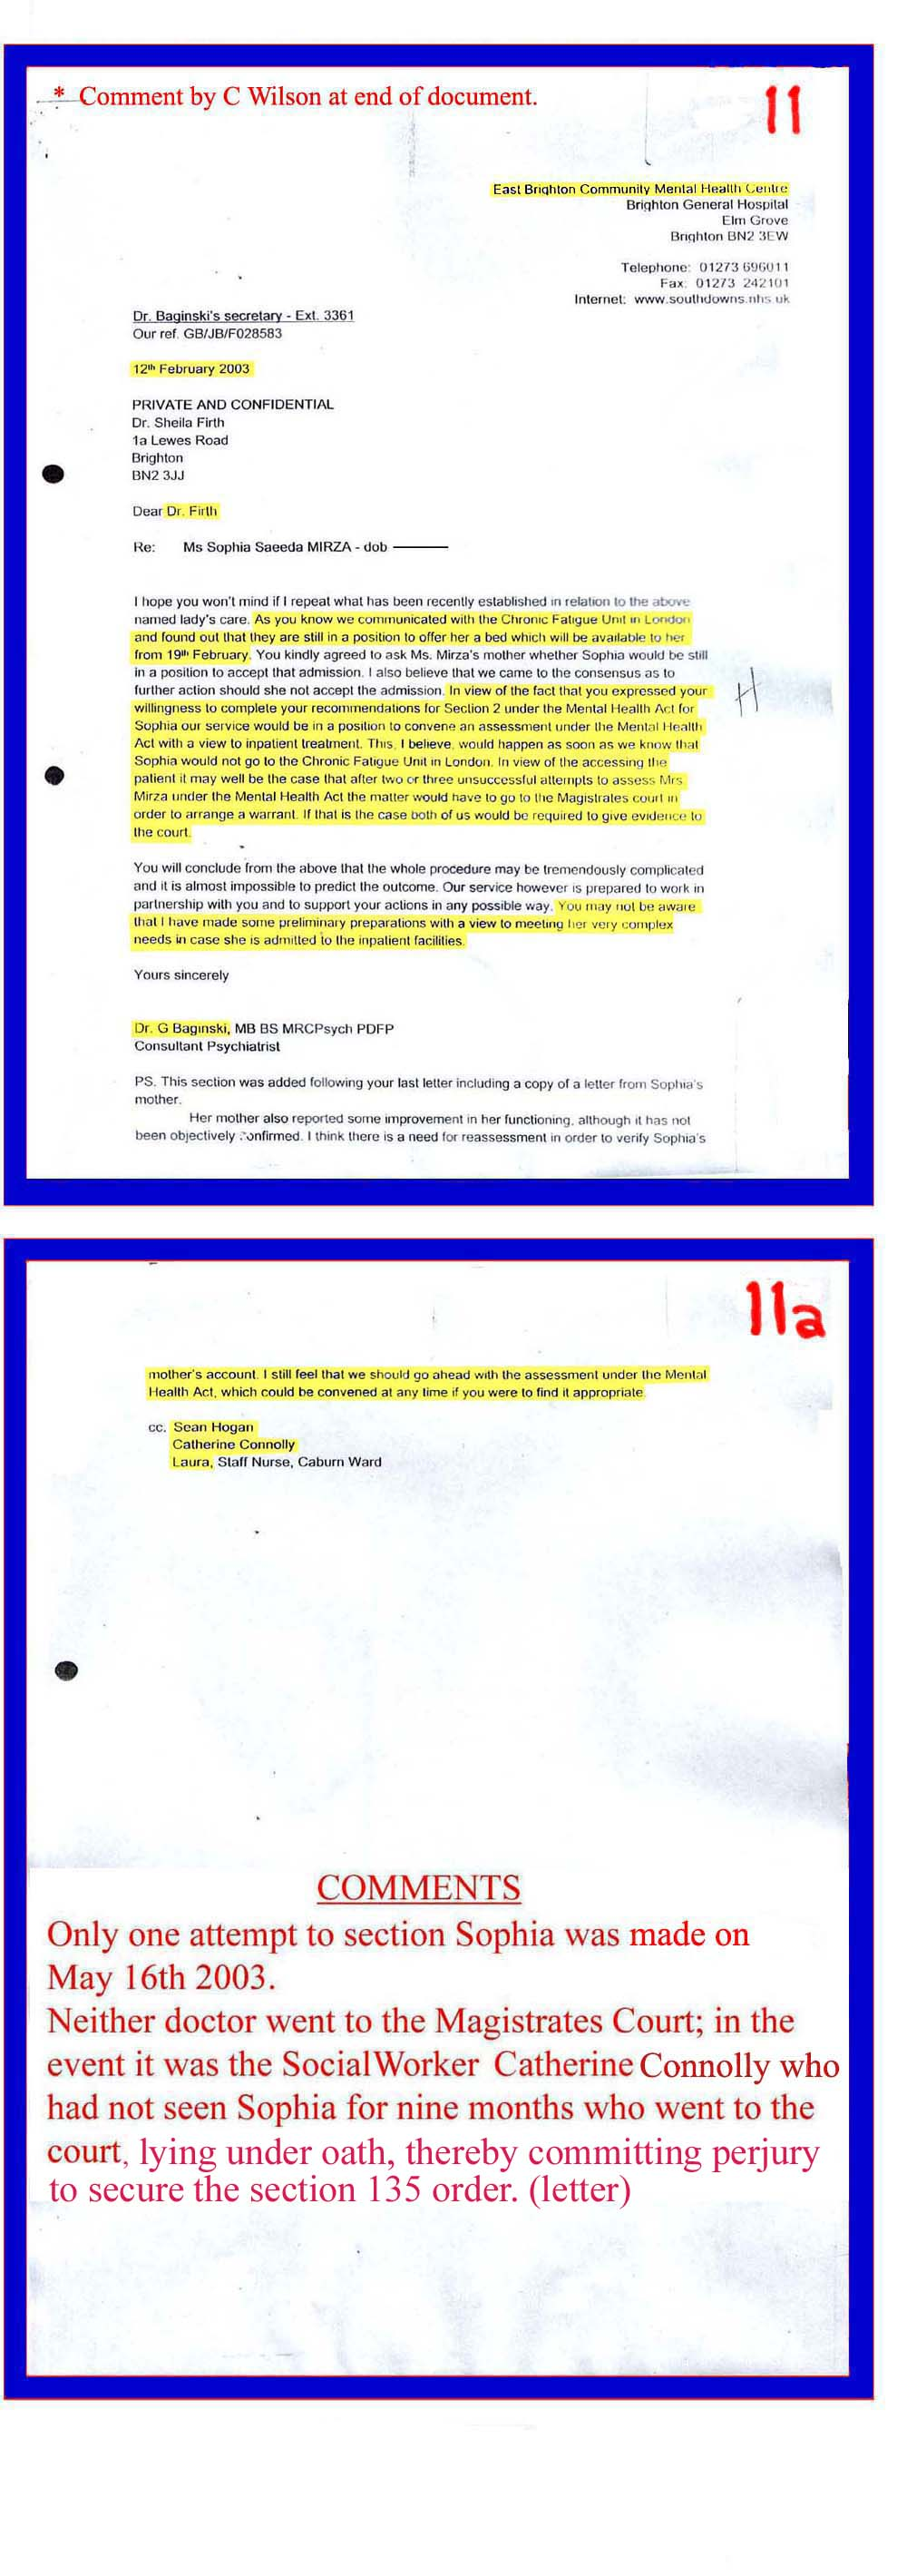 Social services 11 12 02 2003 dr baginski dr firth confirming admission under section 2 should sophia refuse to go into the chronic fatigue unit in romford spiritdancerdesigns Images